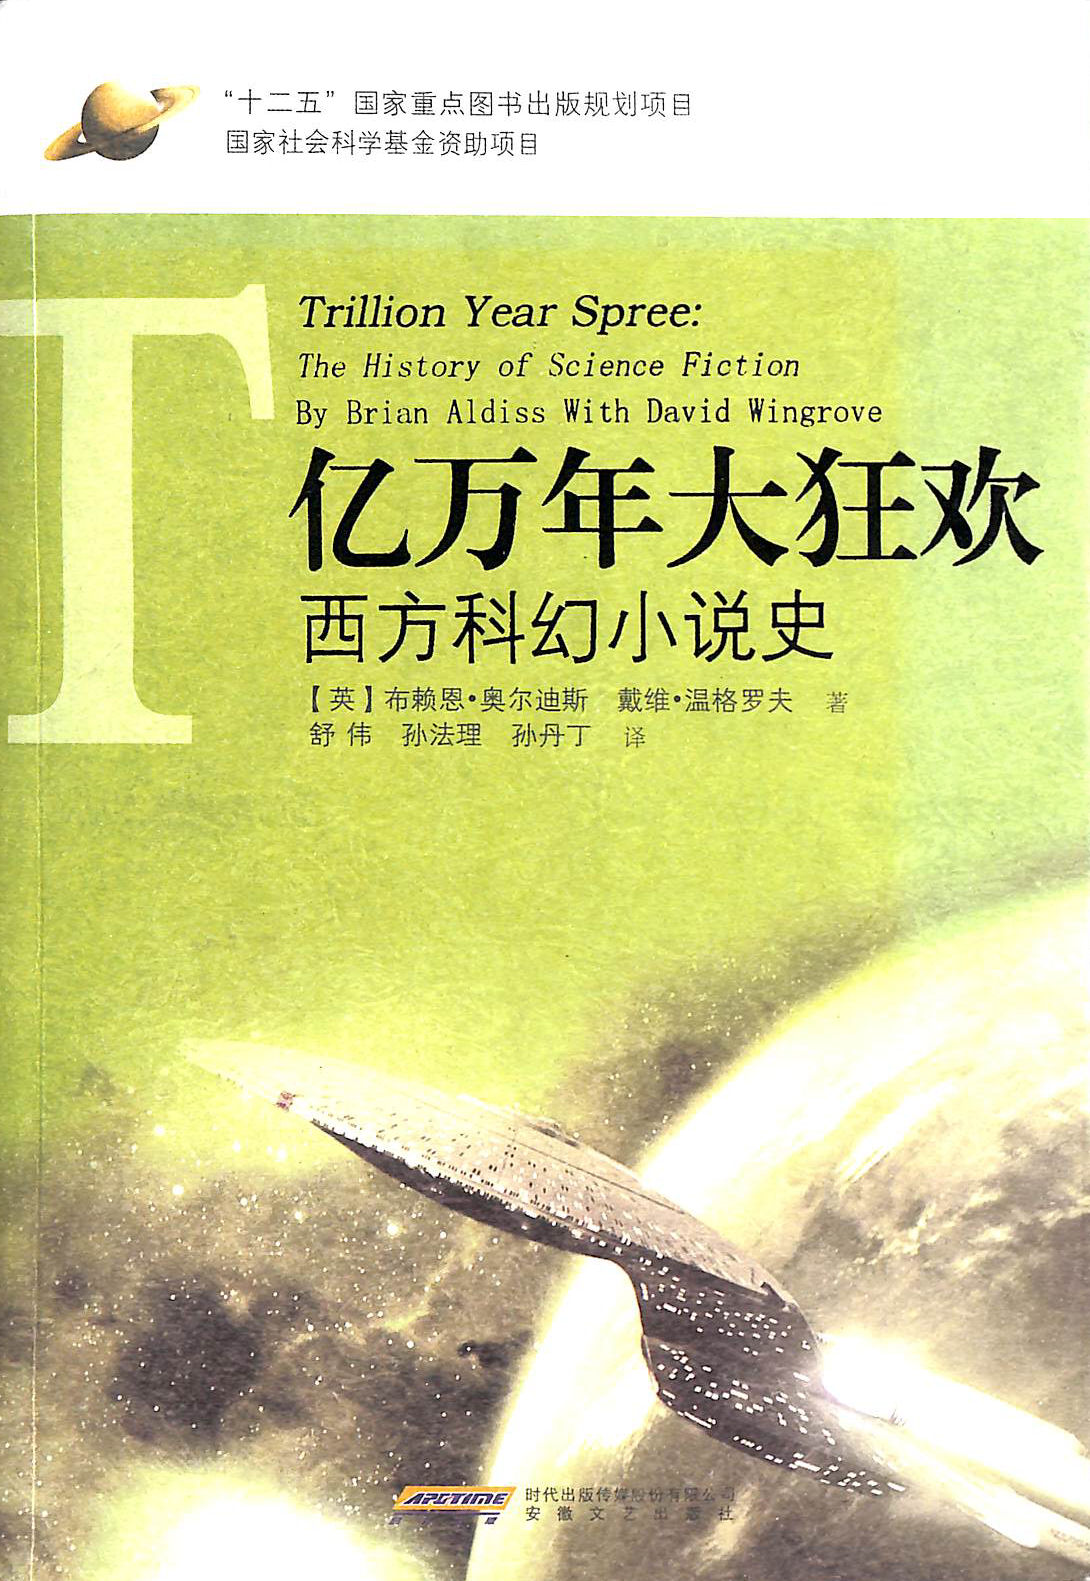 Image for Trillion Year Spree - the history of science fiction in the West (Chinese Edition)